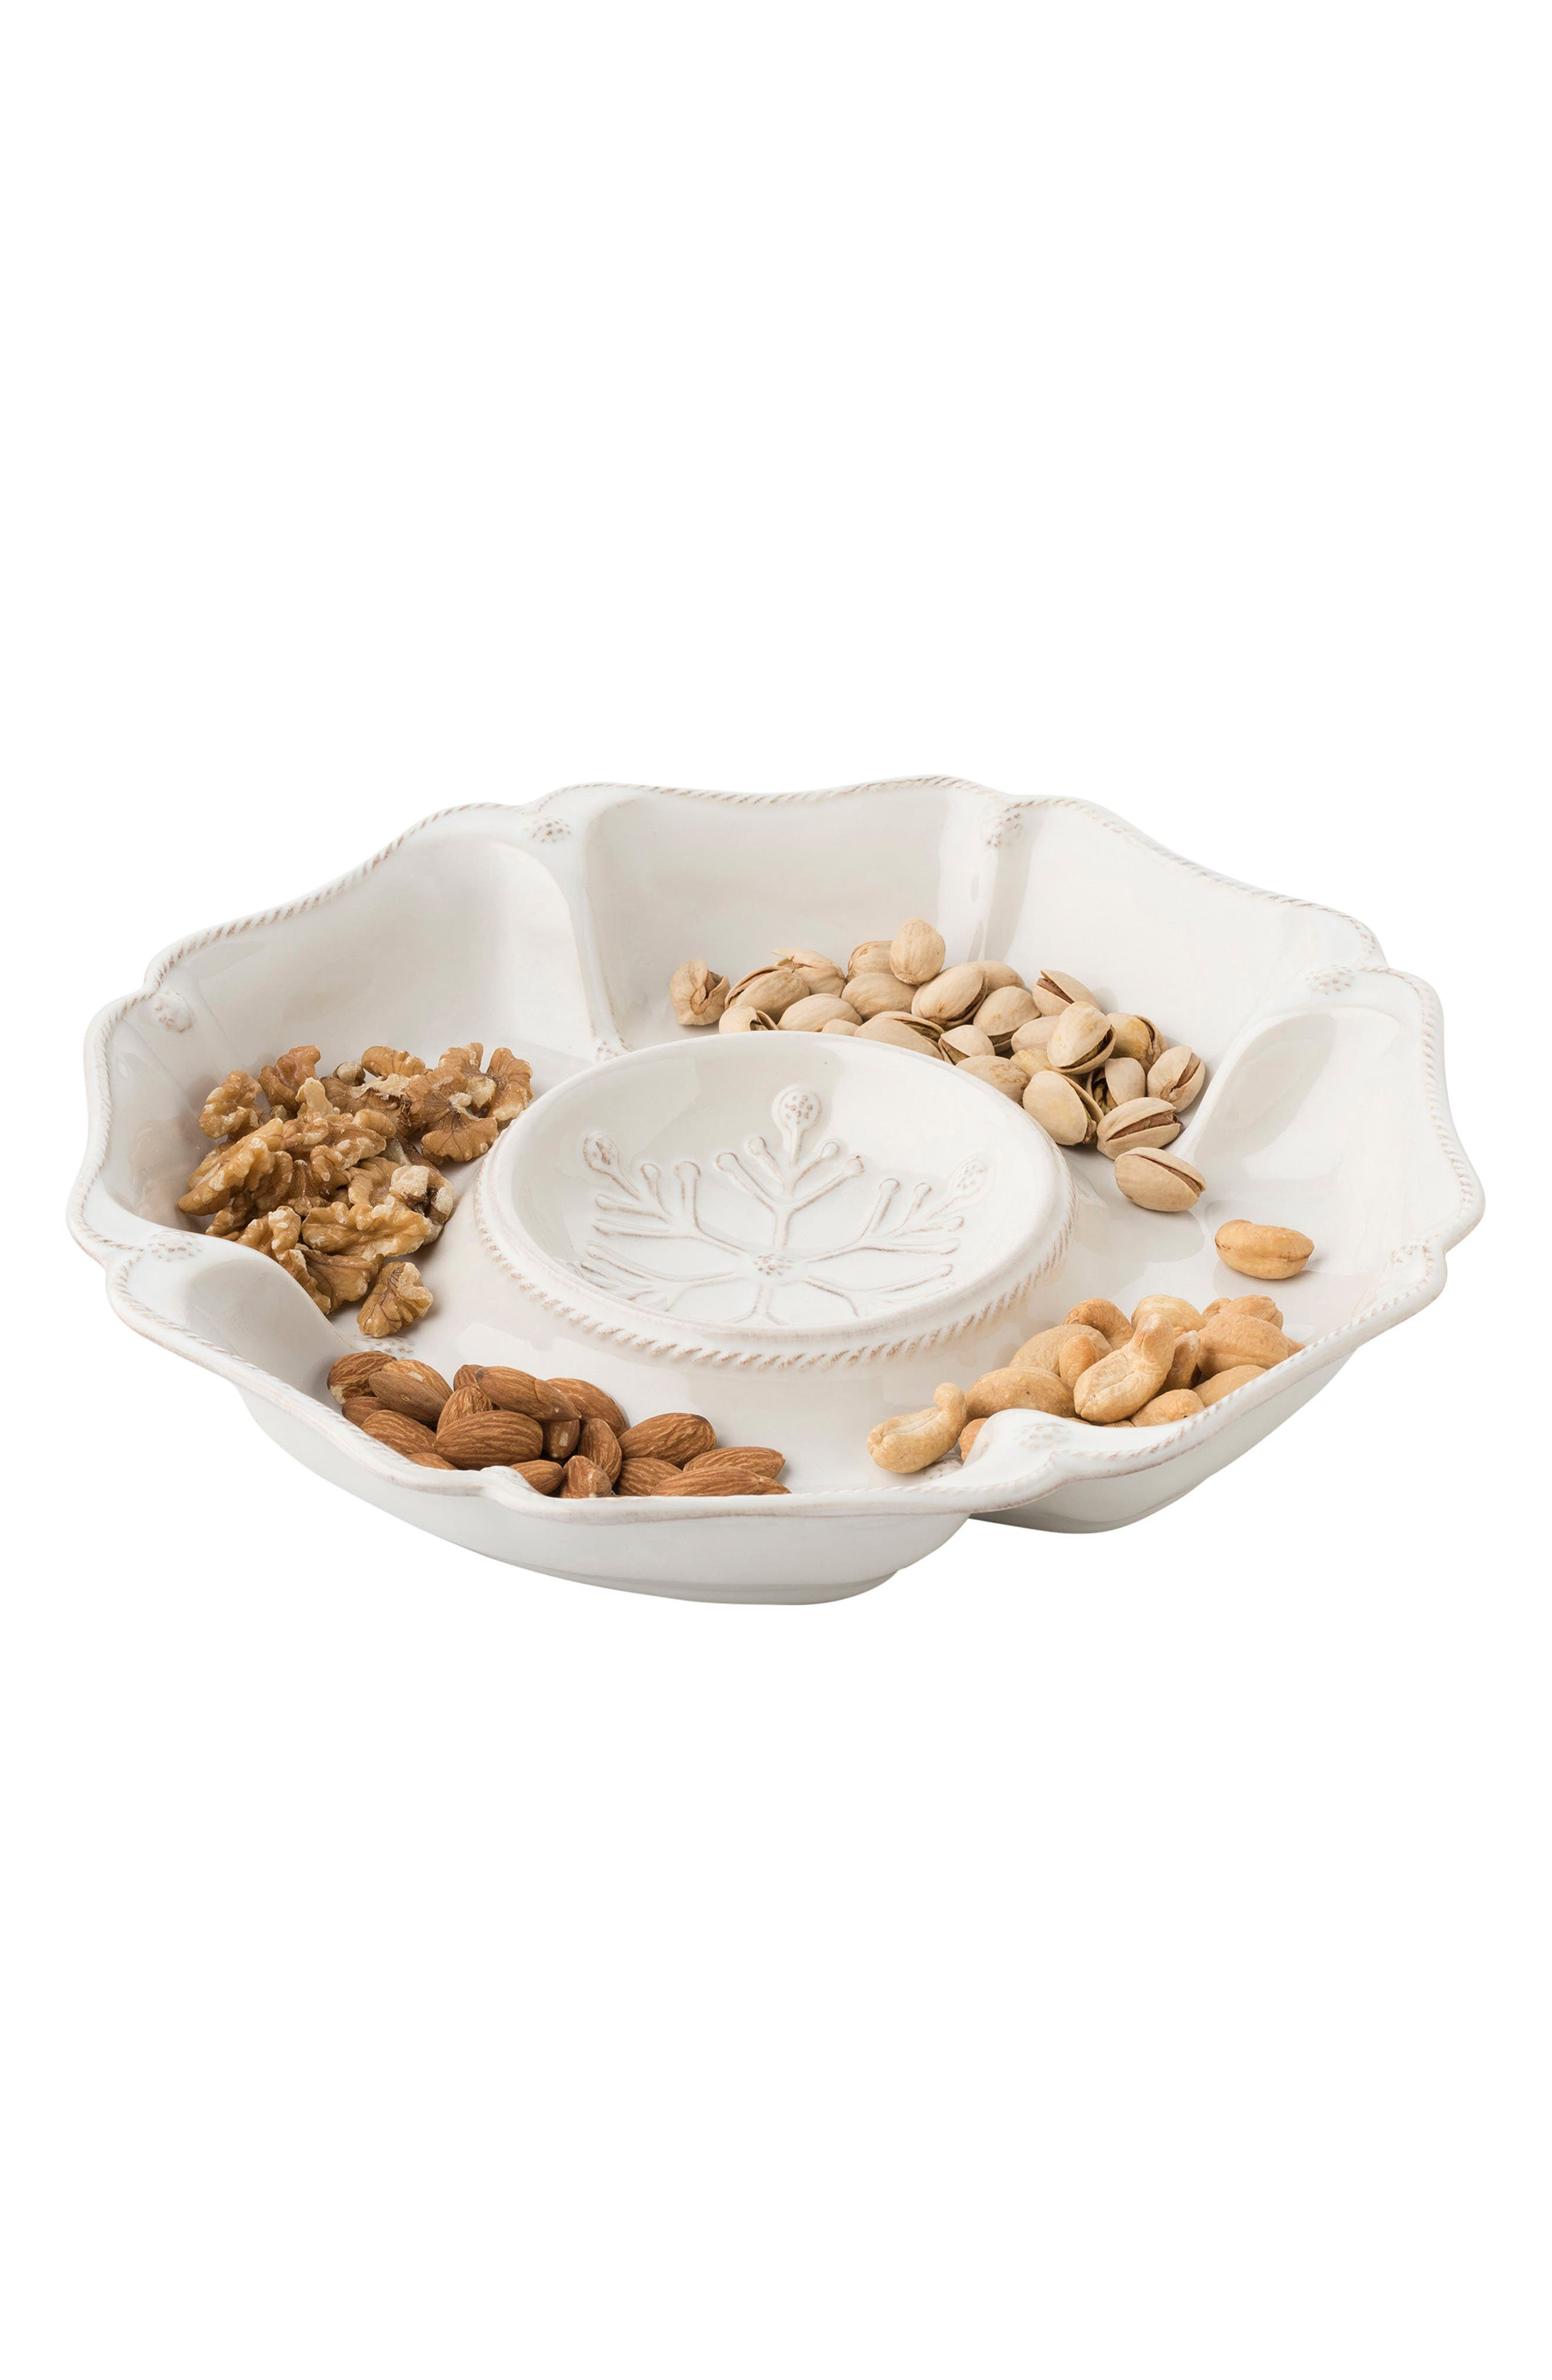 Berry & Thread Ceramic Hors D'Oeuvres Serving Tray,                             Alternate thumbnail 2, color,                             100